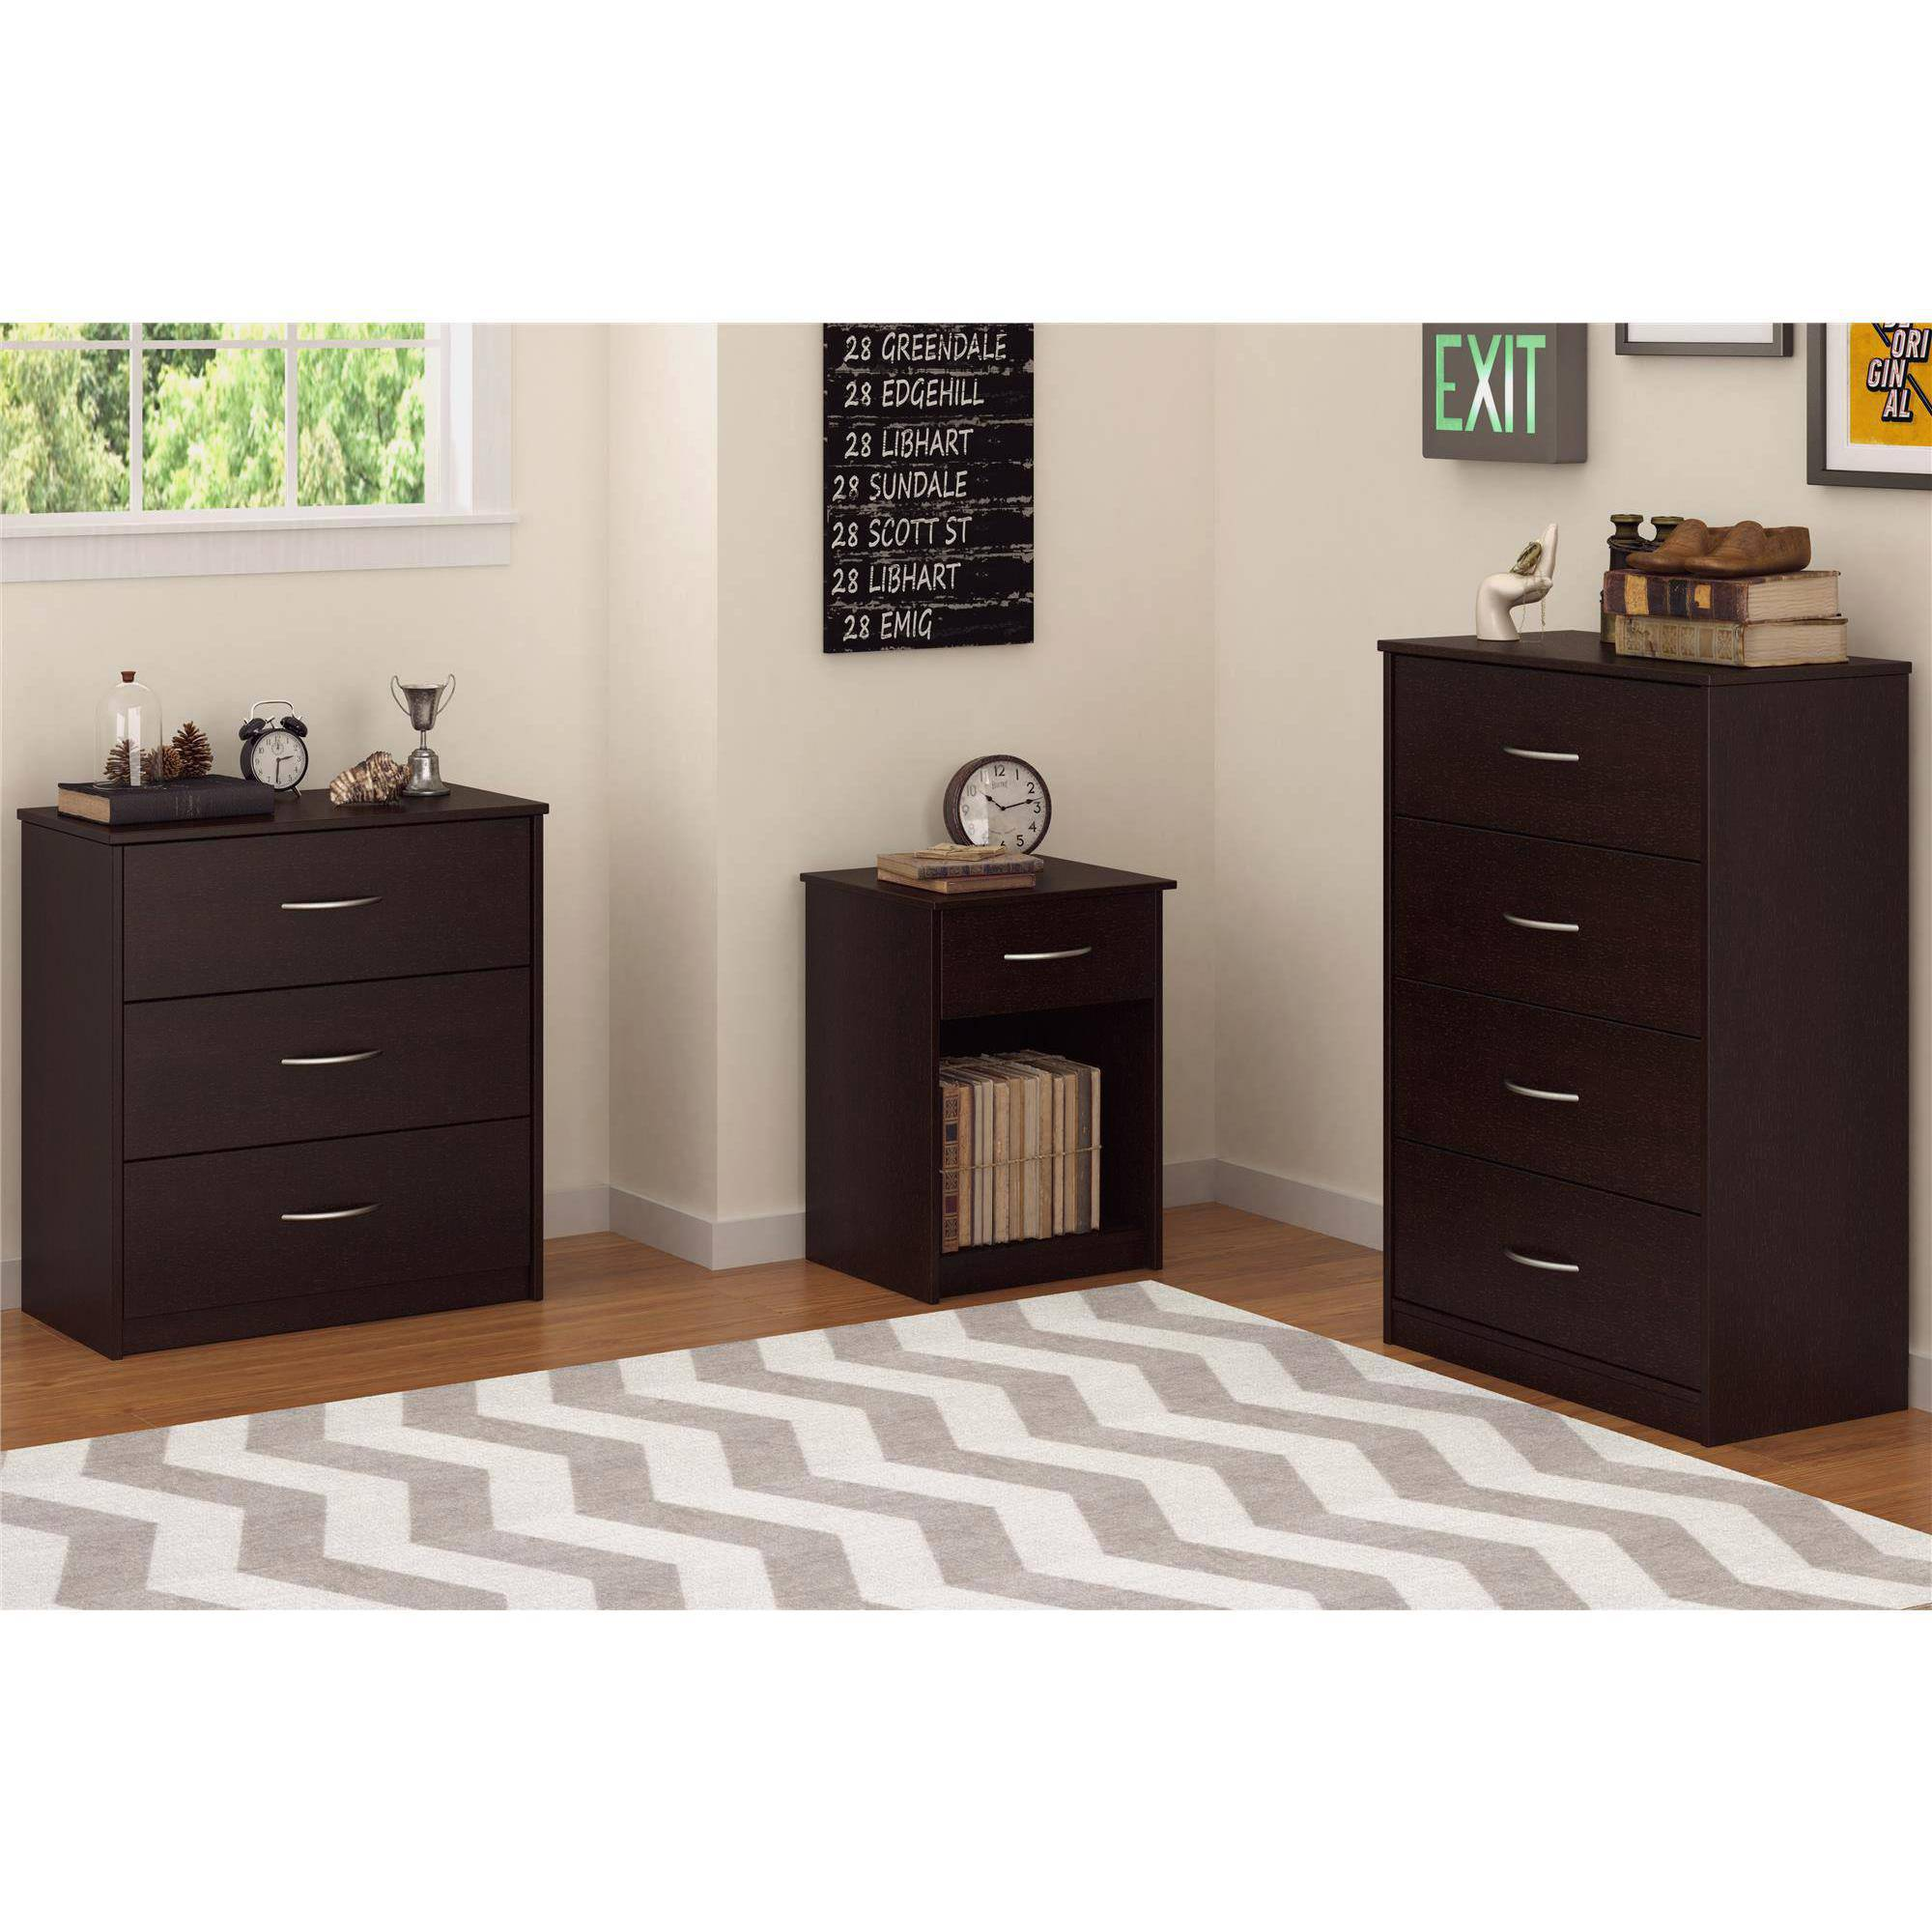 Mainstays 4 Drawer Dresser Multiple Finishes Walmart